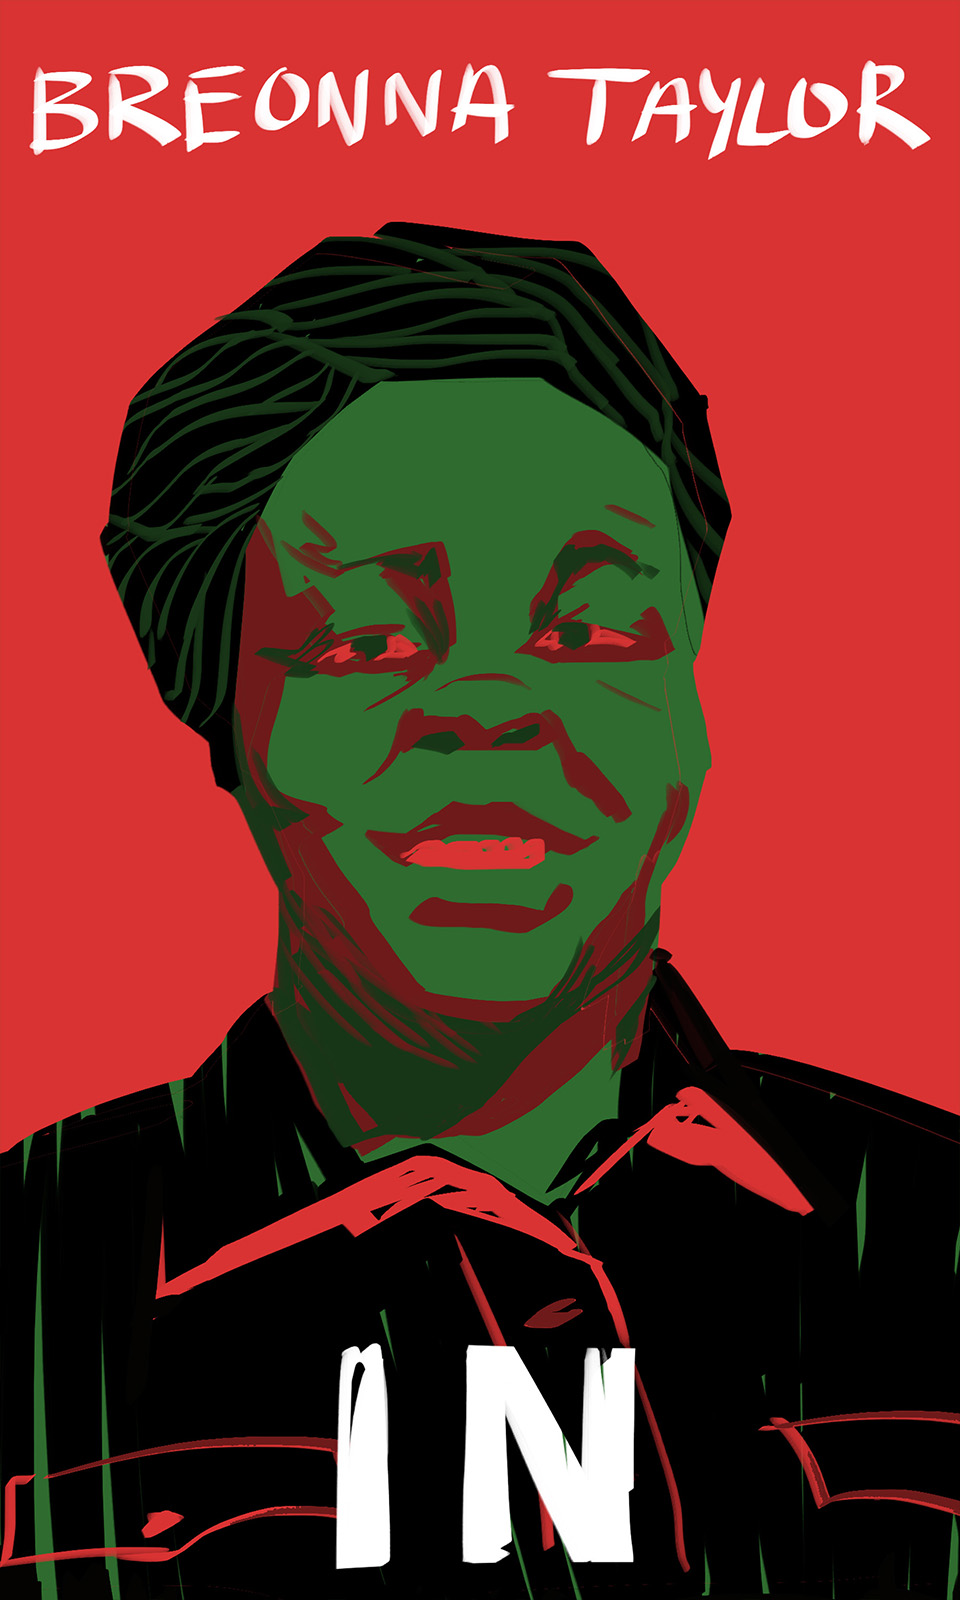 Second portrait in the Rest in Power triptych. Breonna Taylor is depicted in red green and black, with a red background. Top text is her name, bottom text reads 'IN' in hand drawn text.